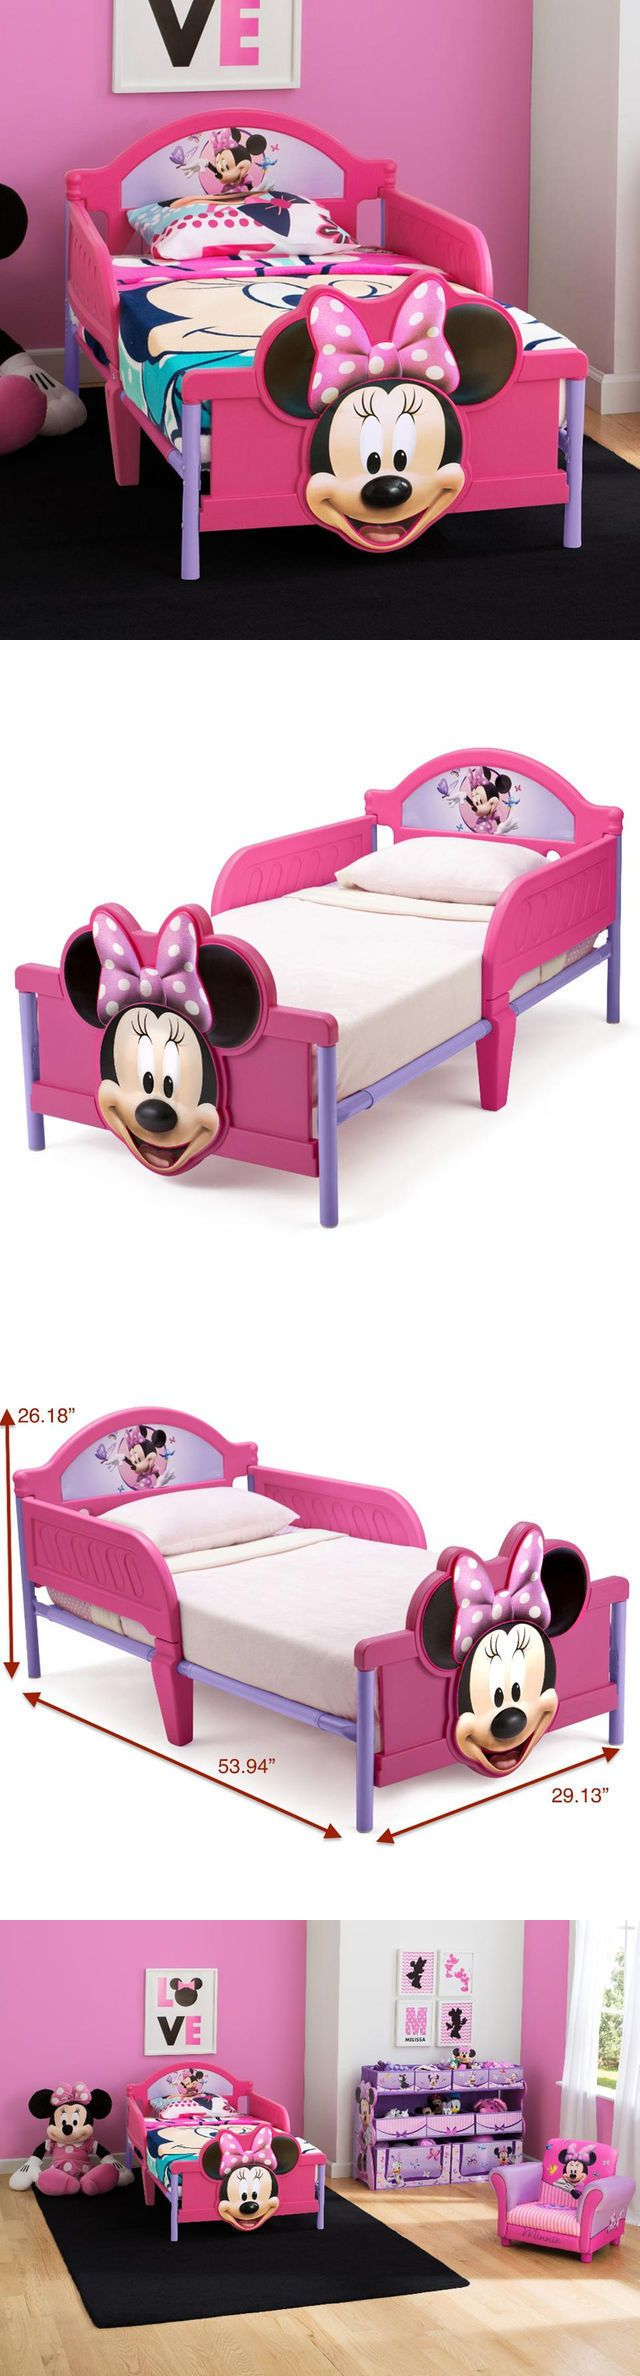 other nursery bedding 20421 disney minnie mouse toddler bed delta